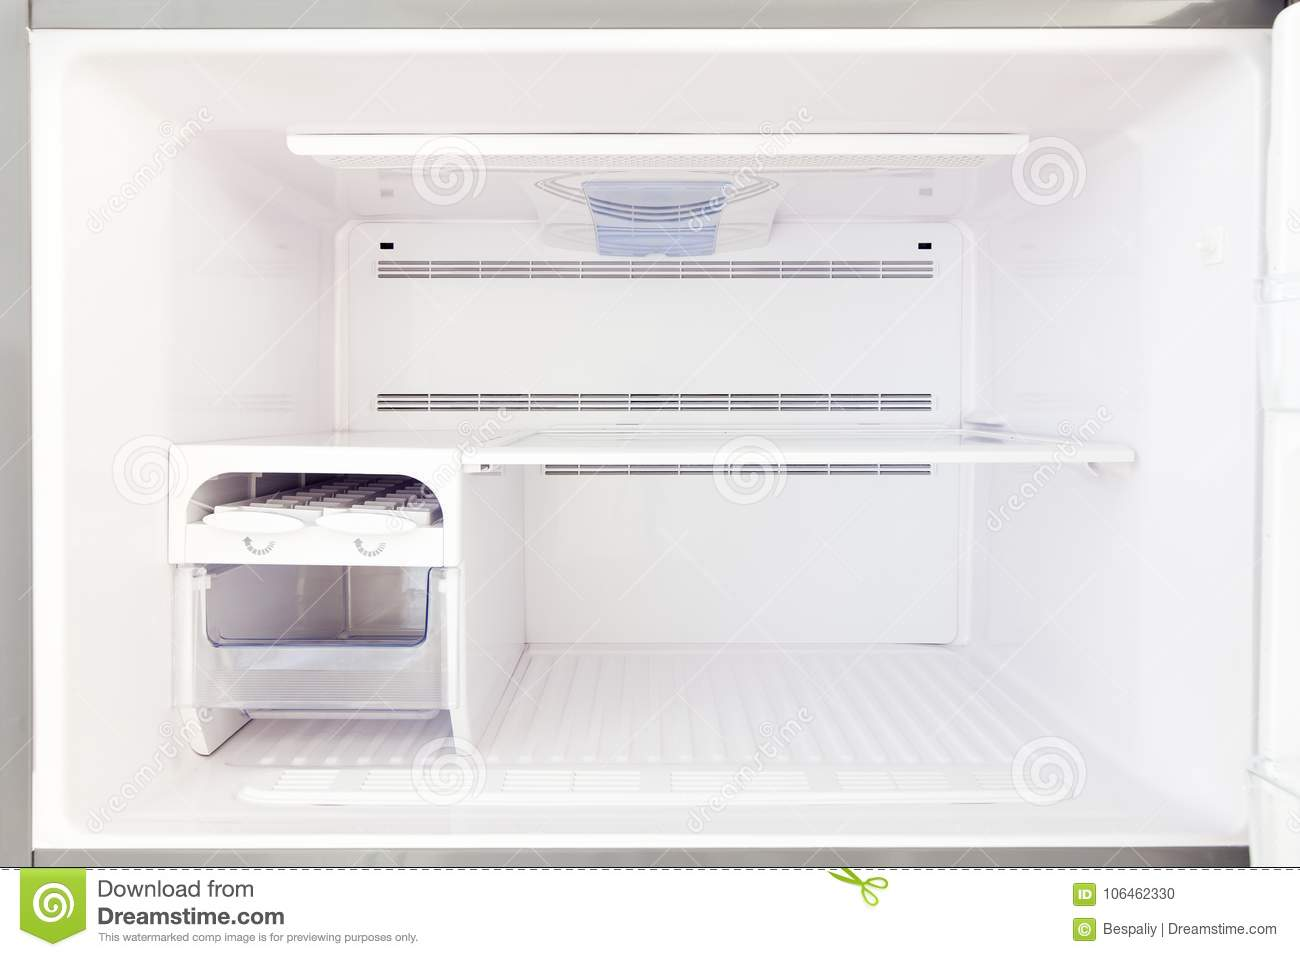 The empty freezer is a view inside.